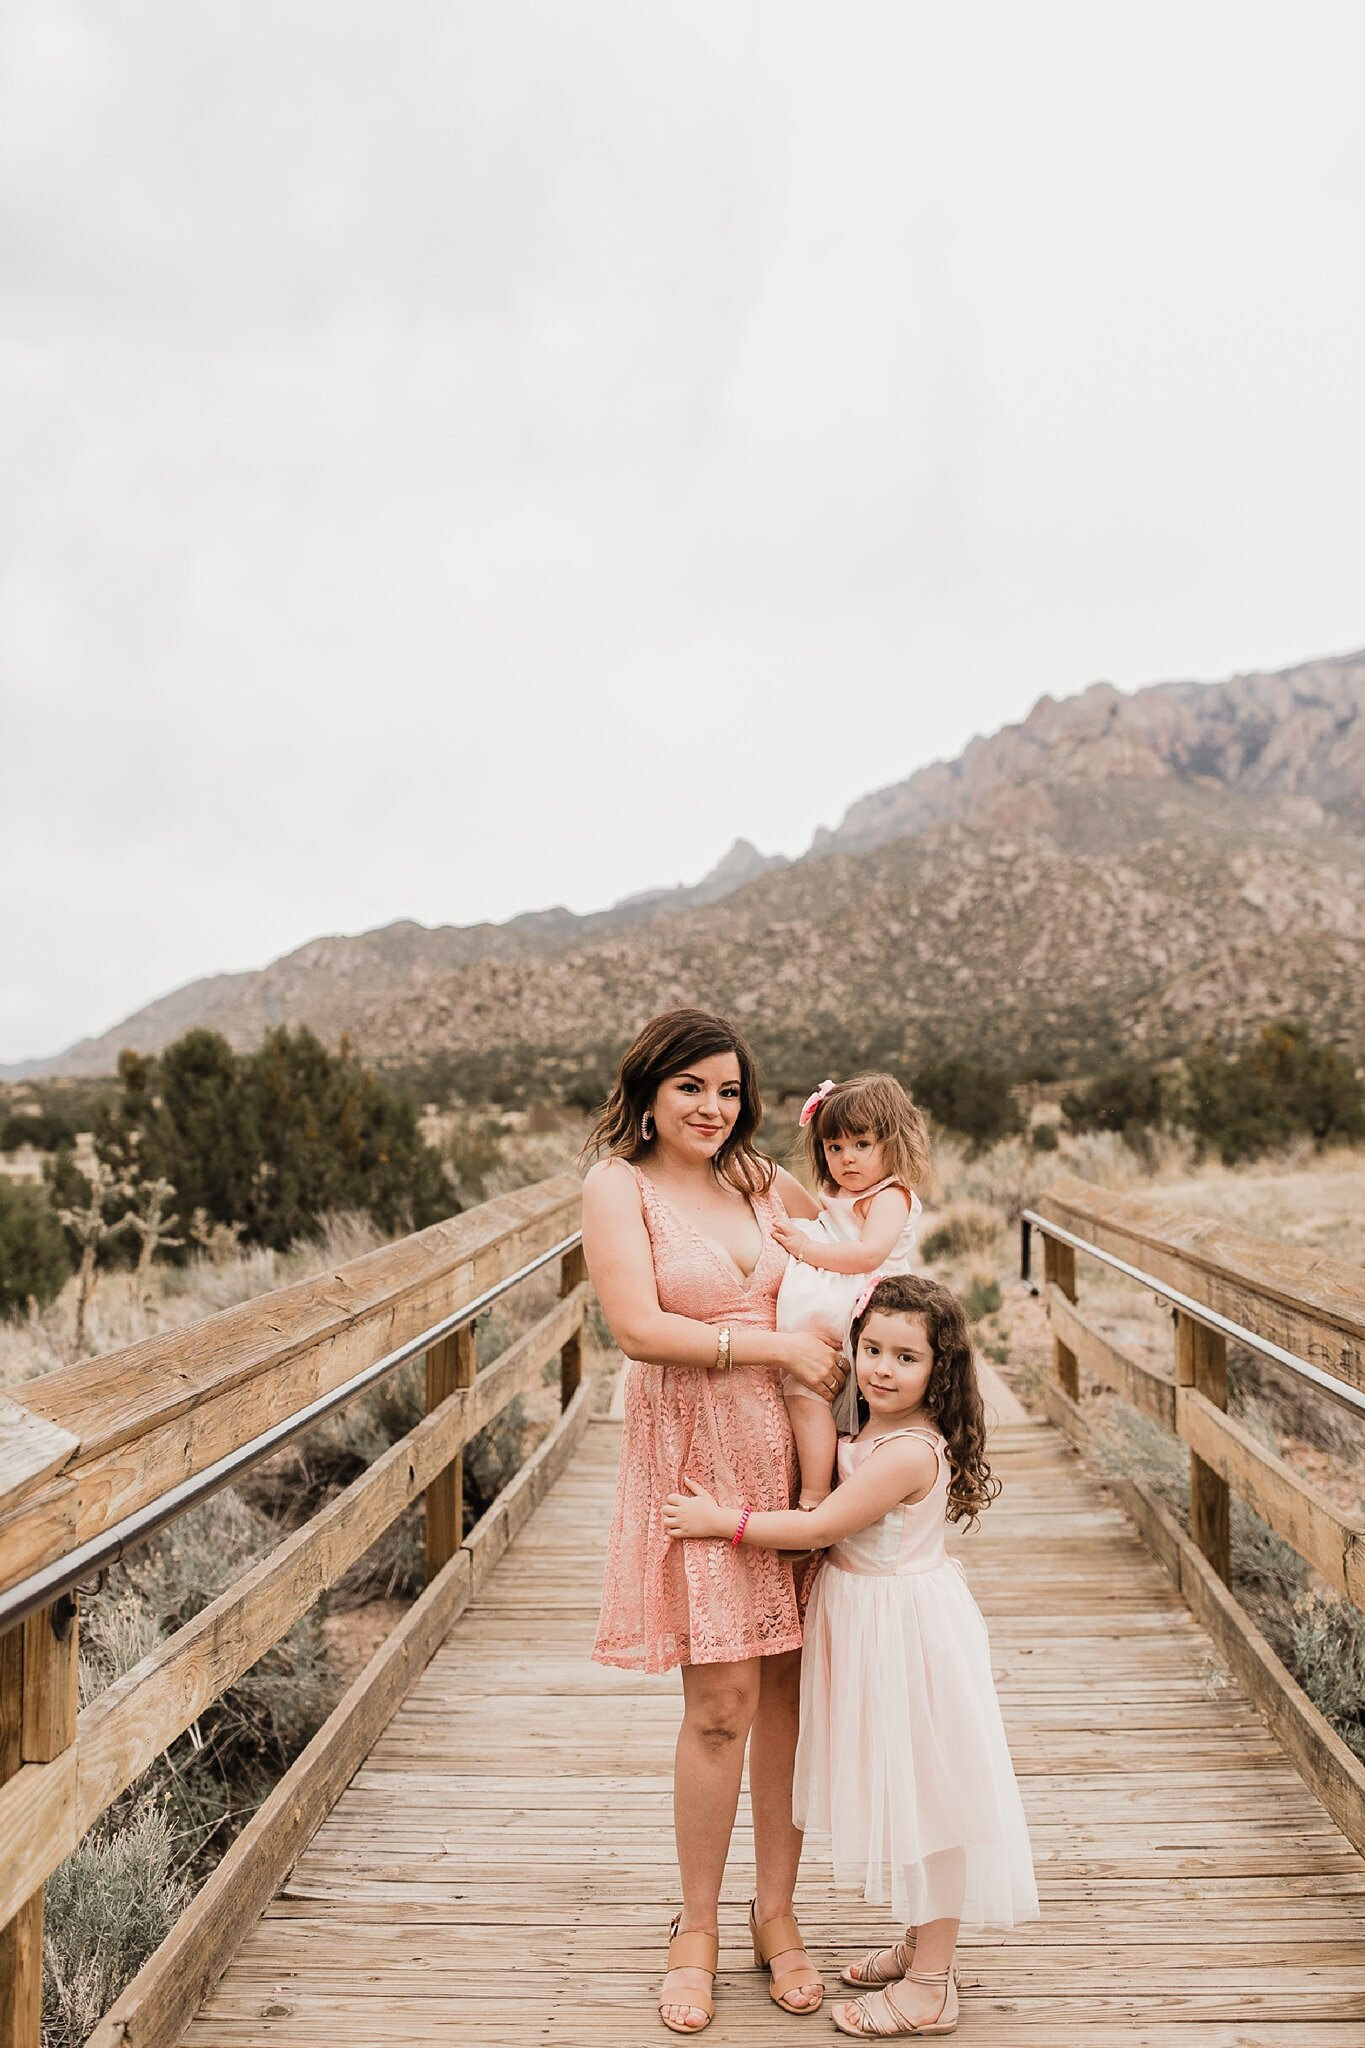 Alicia+lucia+photography+-+albuquerque+wedding+photographer+-+santa+fe+wedding+photography+-+new+mexico+wedding+photographer+-+new+mexico+wedding+-+family+portraits+-+family+photographer+-+new+mexico+family+photographer_0001.jpg